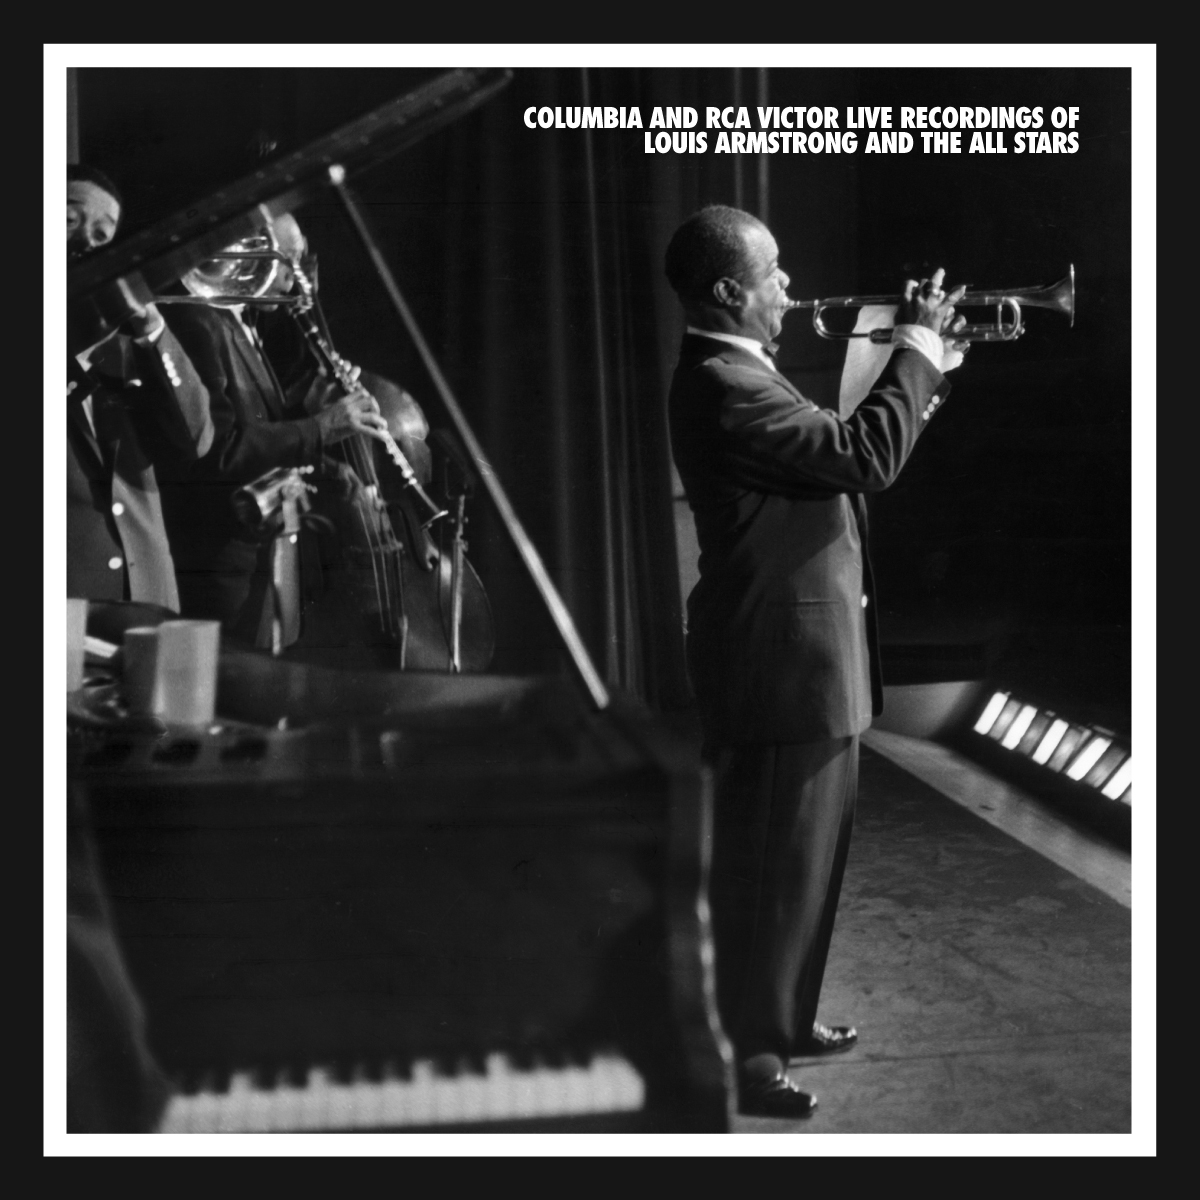 The Columbia & RCA Victor Live Recordings of Louis Armstrong & The All-Stars